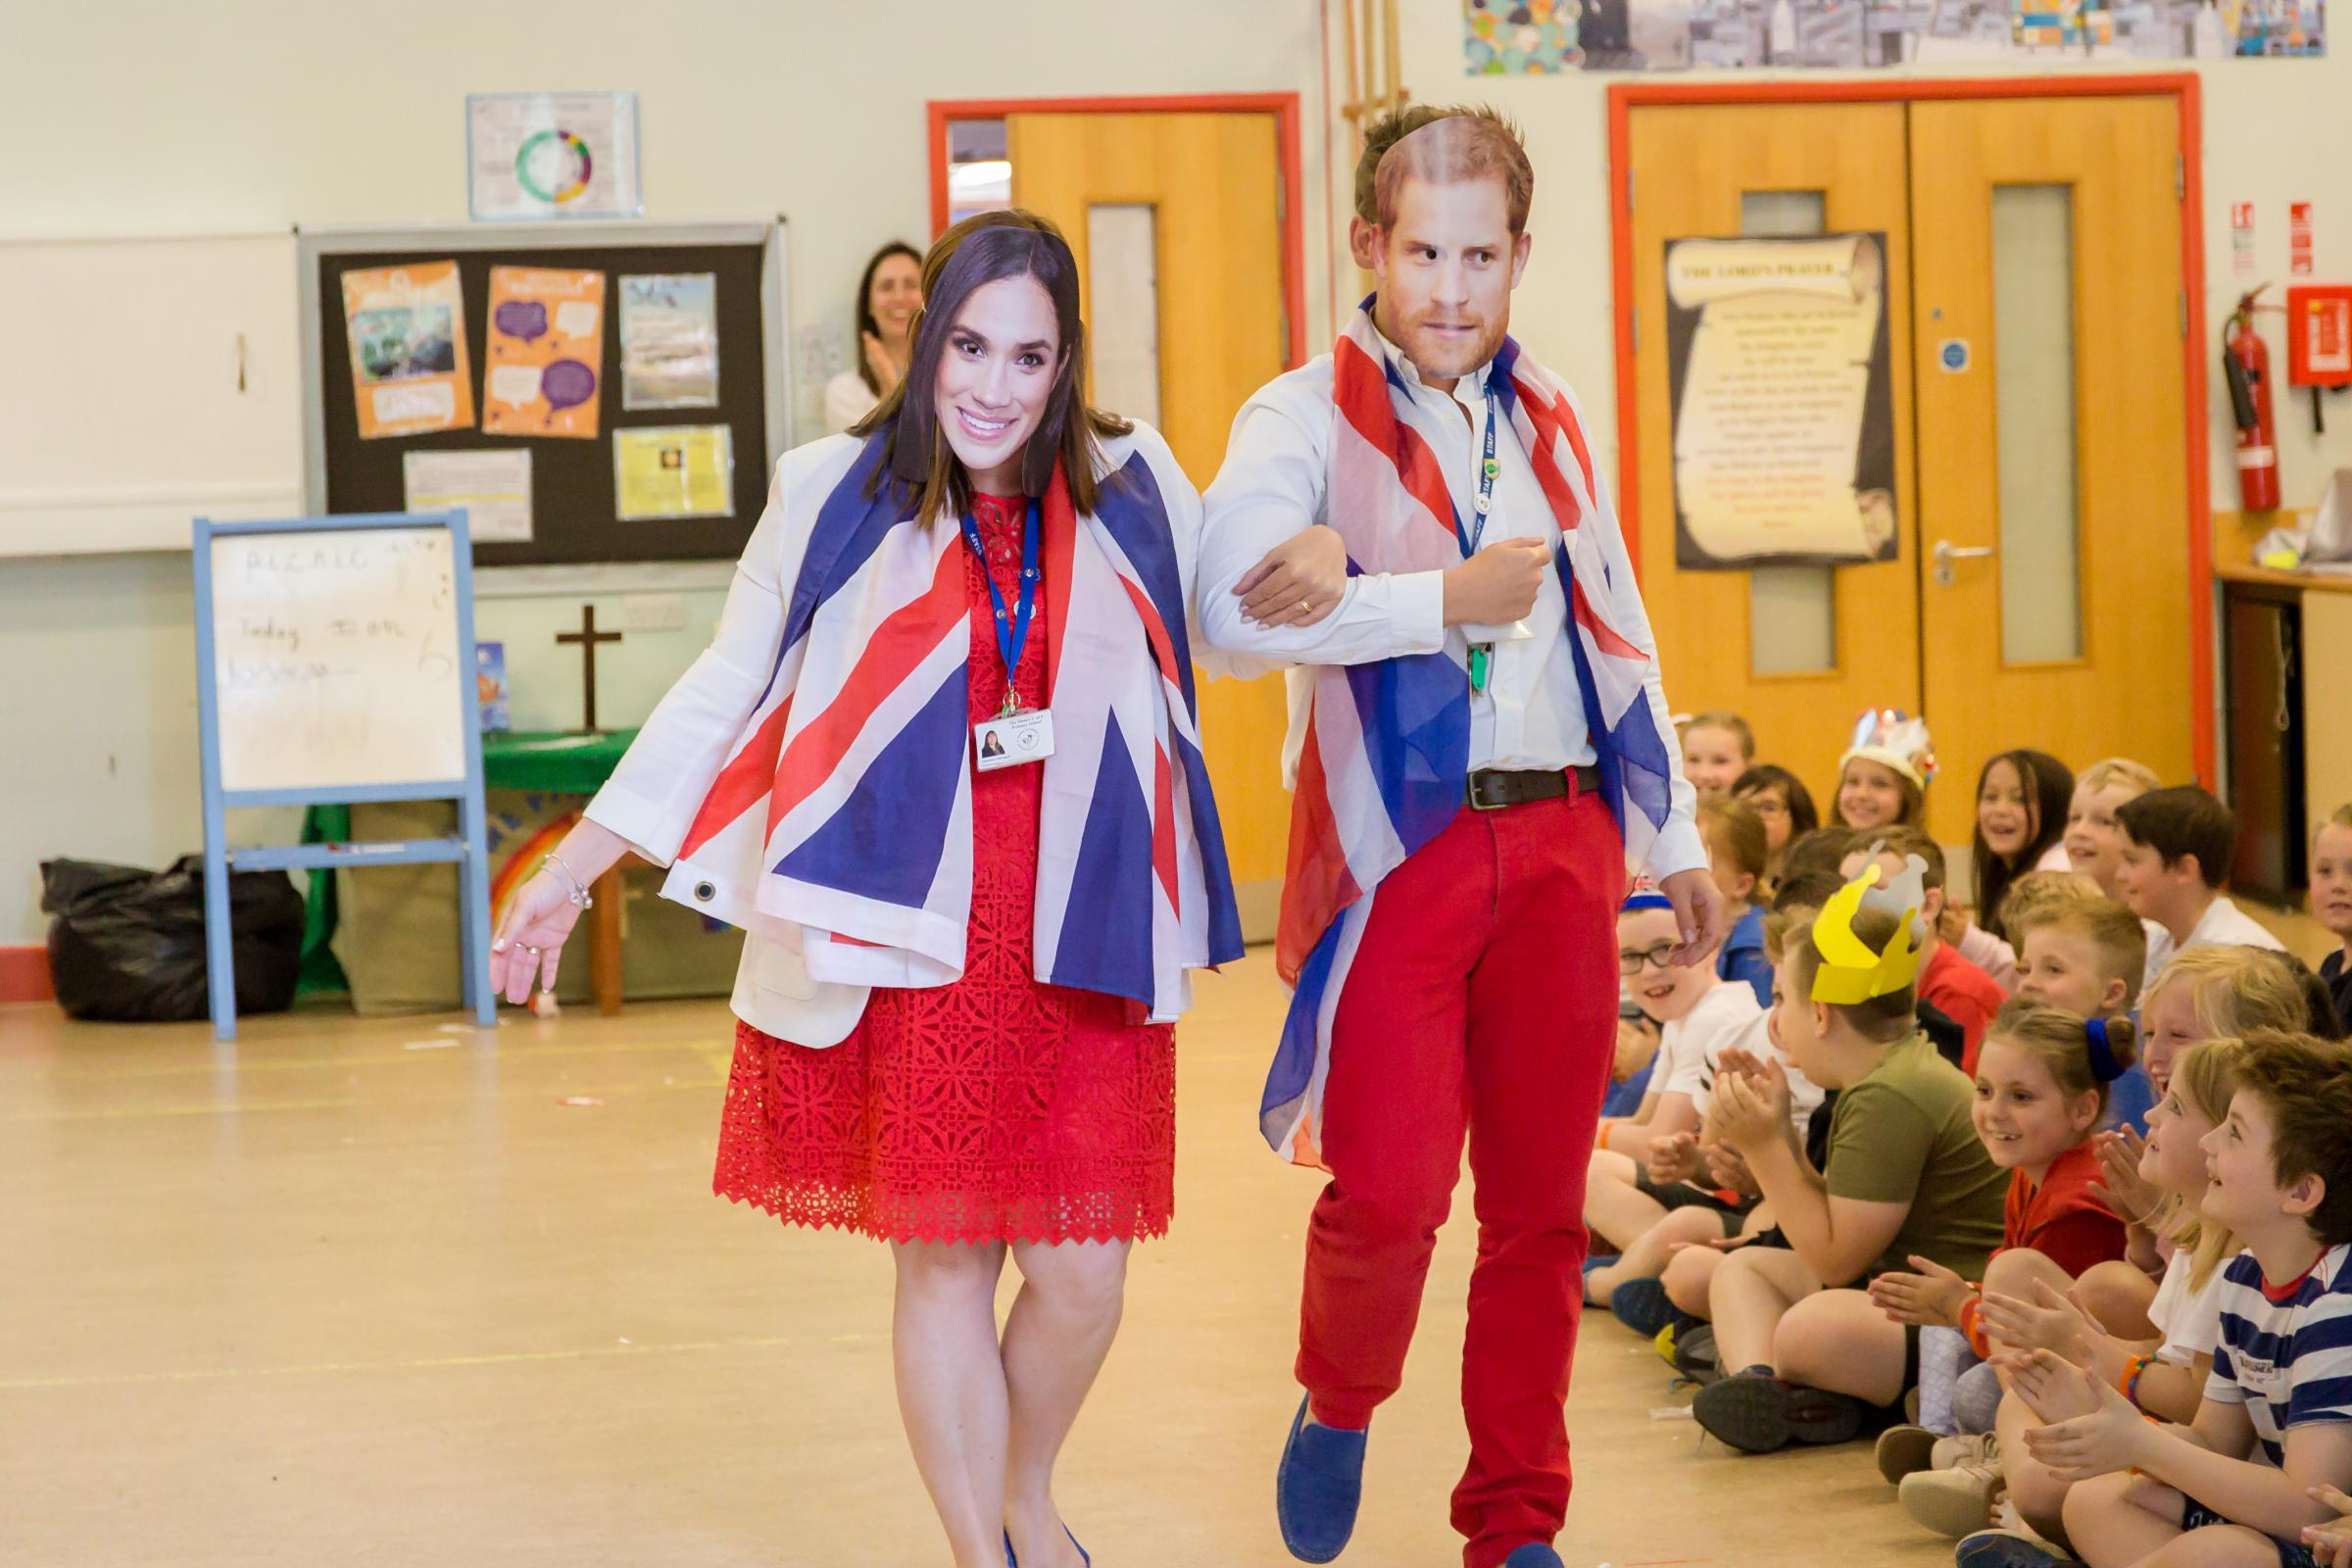 Royal wedding inspires 'best school day ever' at a Coalpit Heath primary